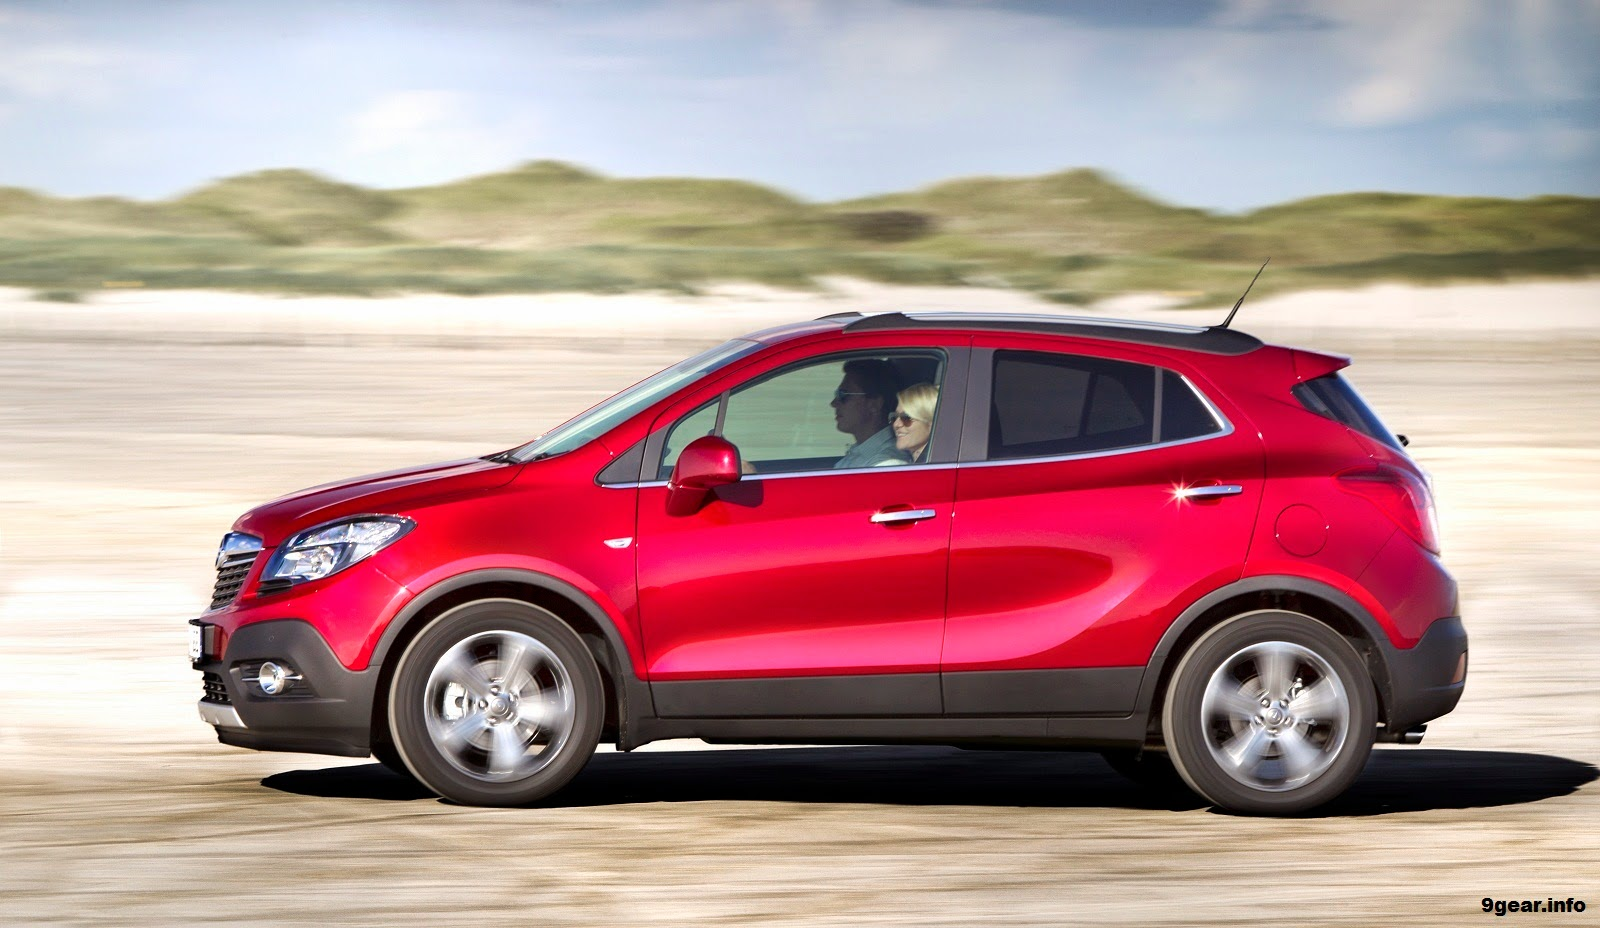 2015 opel mokka whisper diesel 1 6 cdti 136 hp car reviews new car pictures for 2018 2019. Black Bedroom Furniture Sets. Home Design Ideas